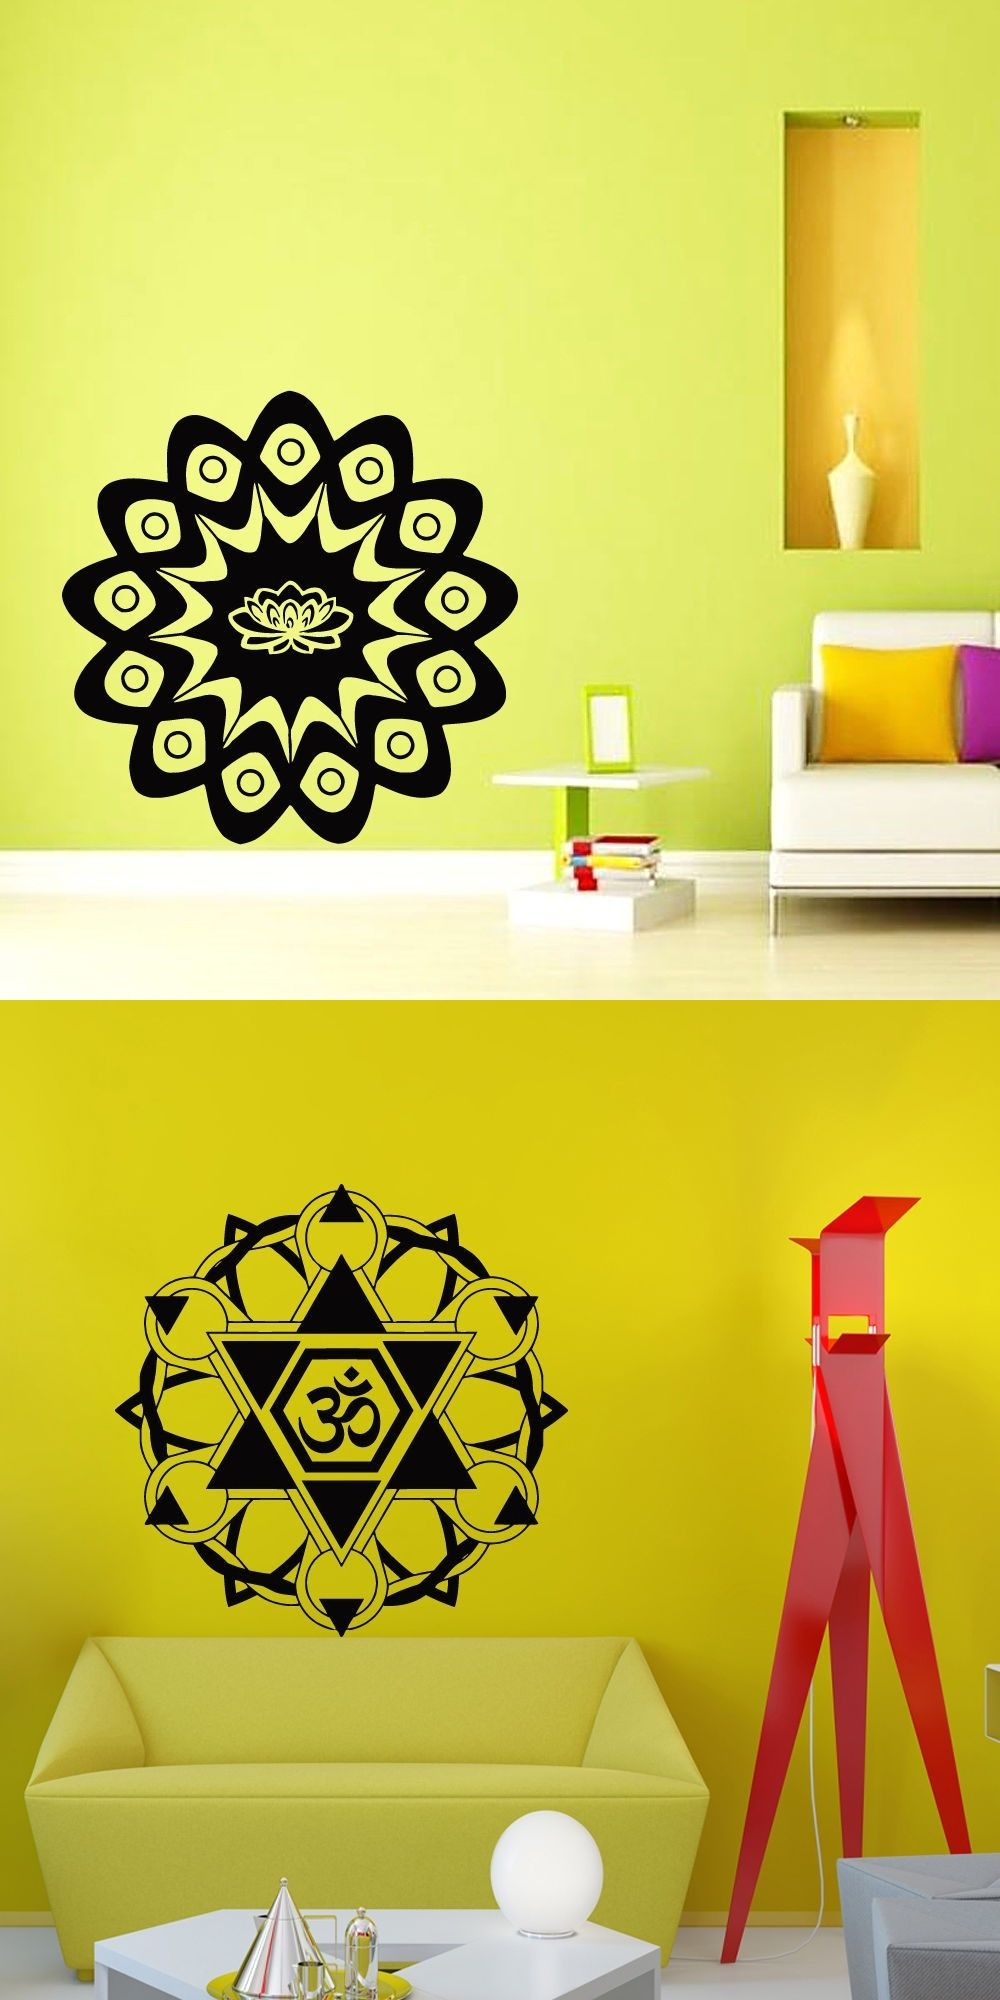 Flower Yoga Wall Stickers Quotes Diy Vinyl Removable Gym Decor ...